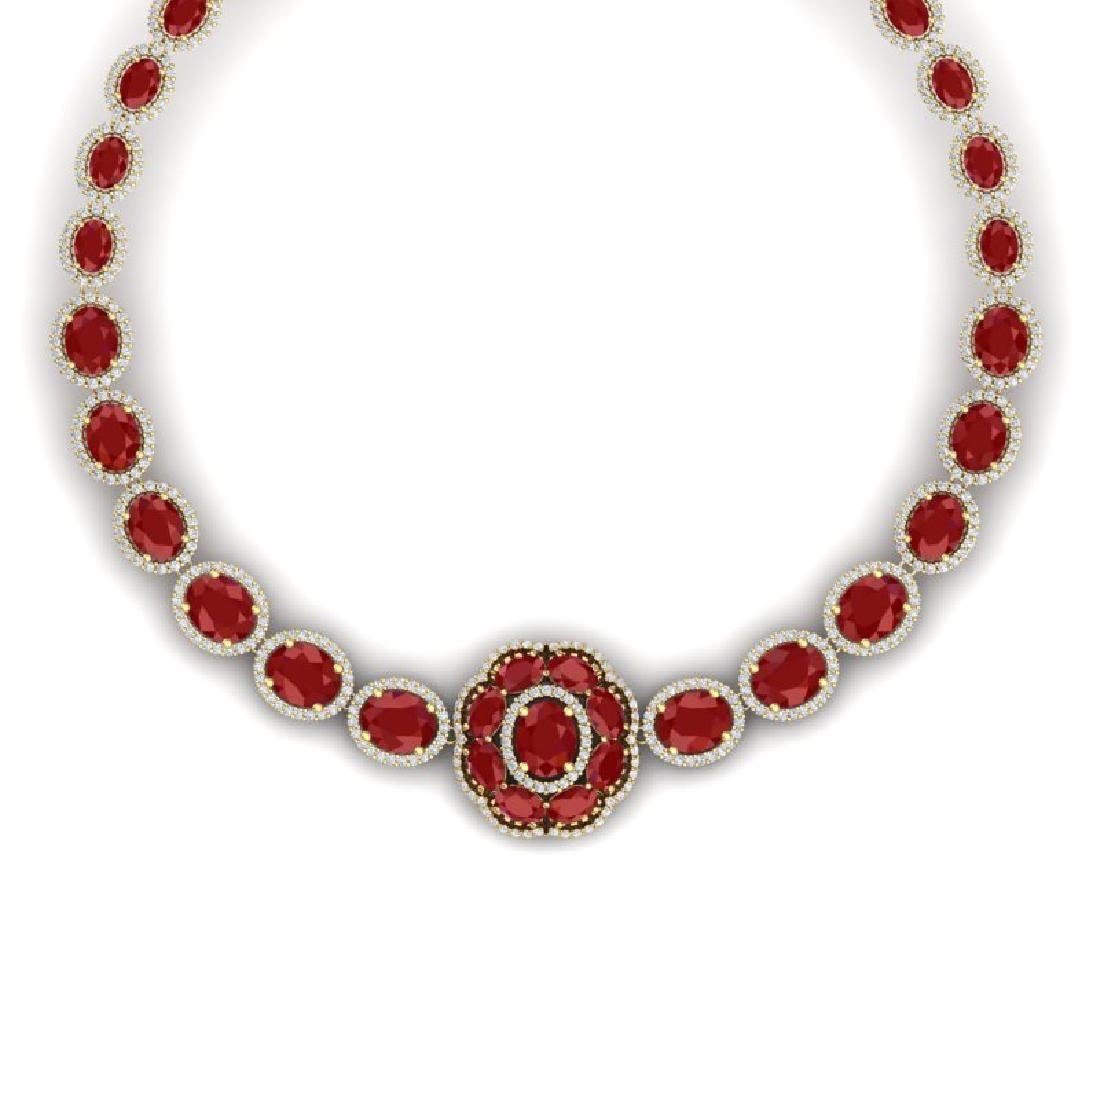 58.33 CTW Royalty Ruby & VS Diamond Necklace 18K Yellow - 2